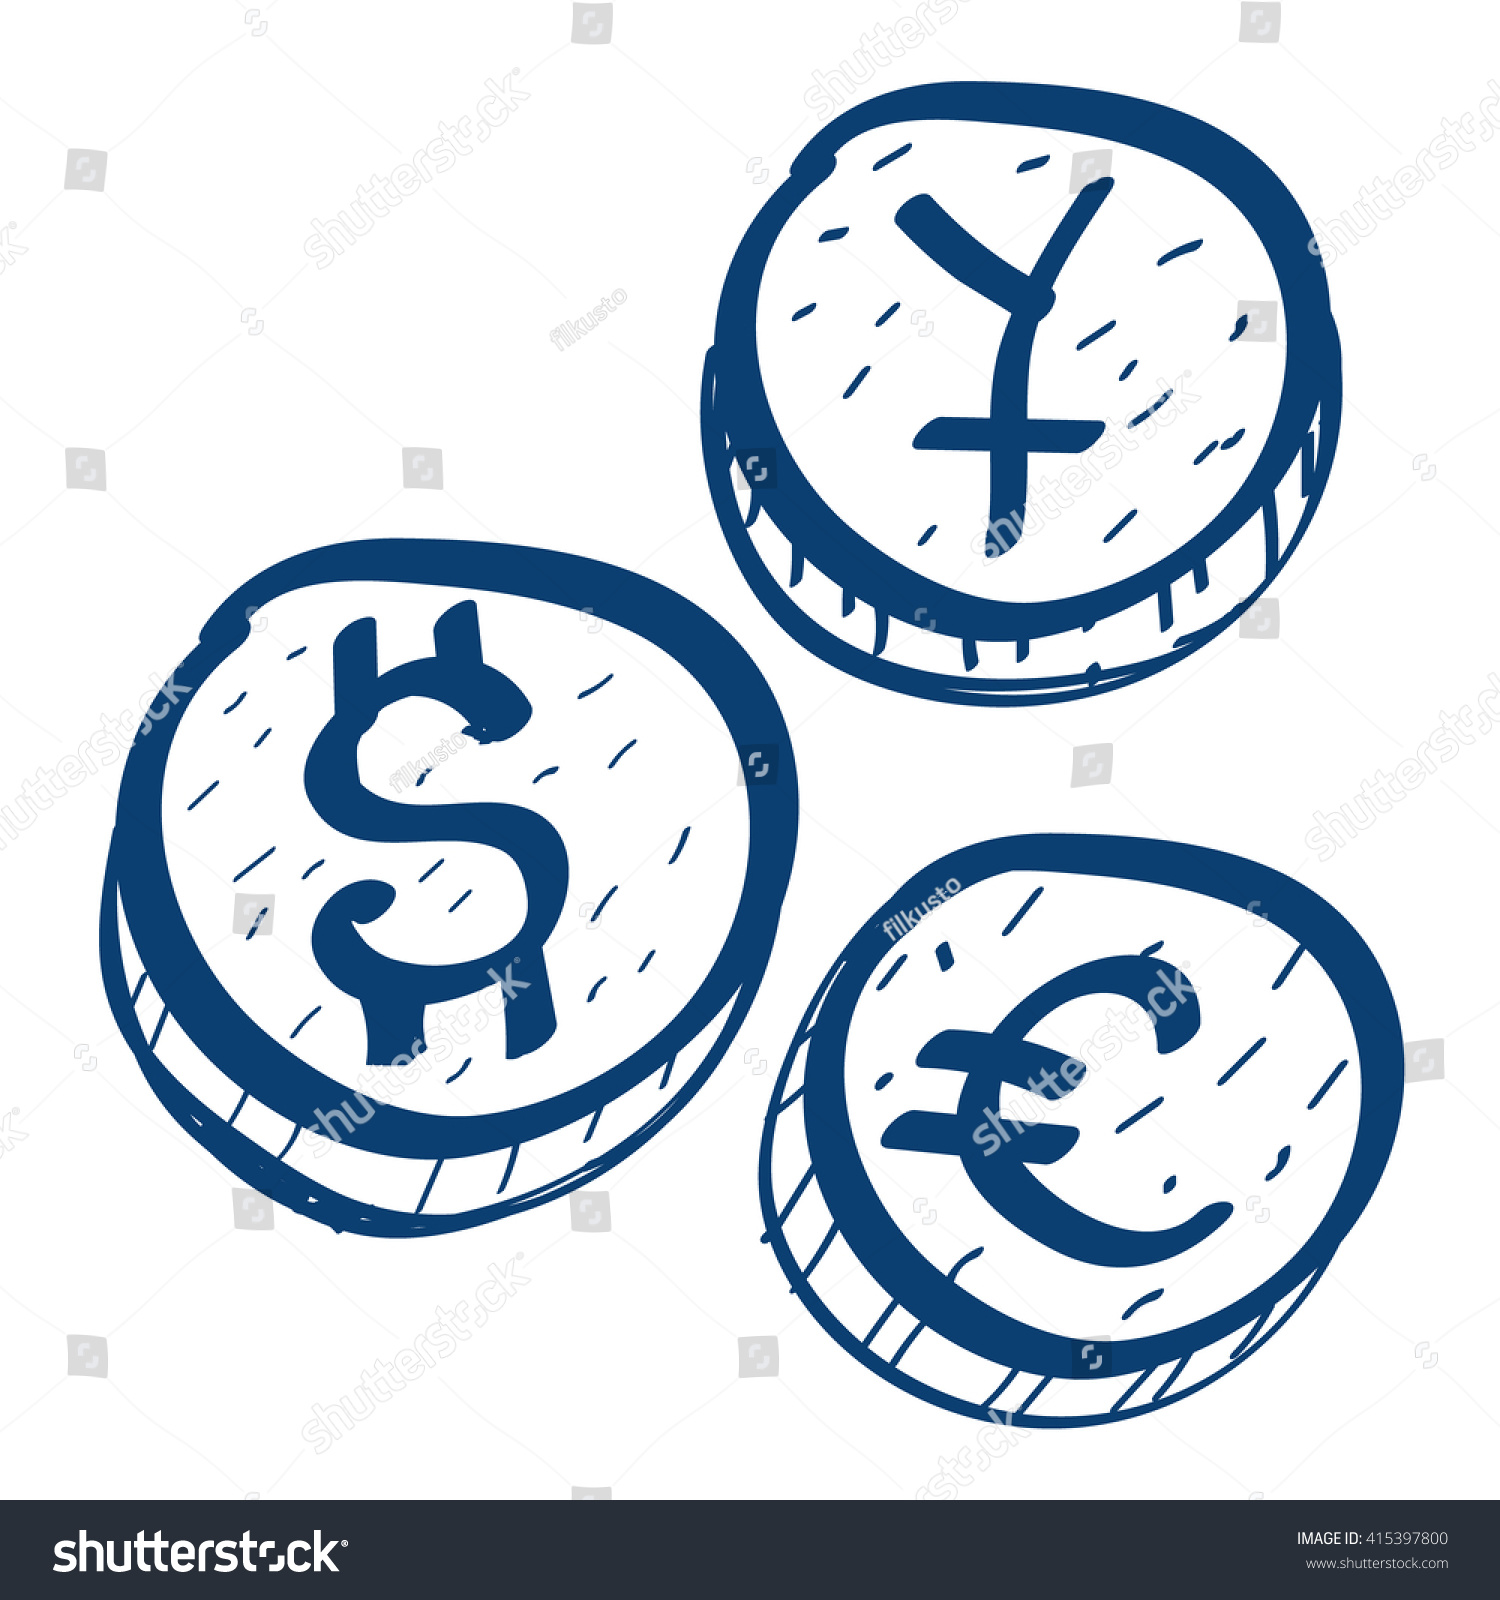 Coins symbols foreign currency icon design stock vector 415397800 coins with symbols of foreign currency icon design elements in hand drawn style buycottarizona